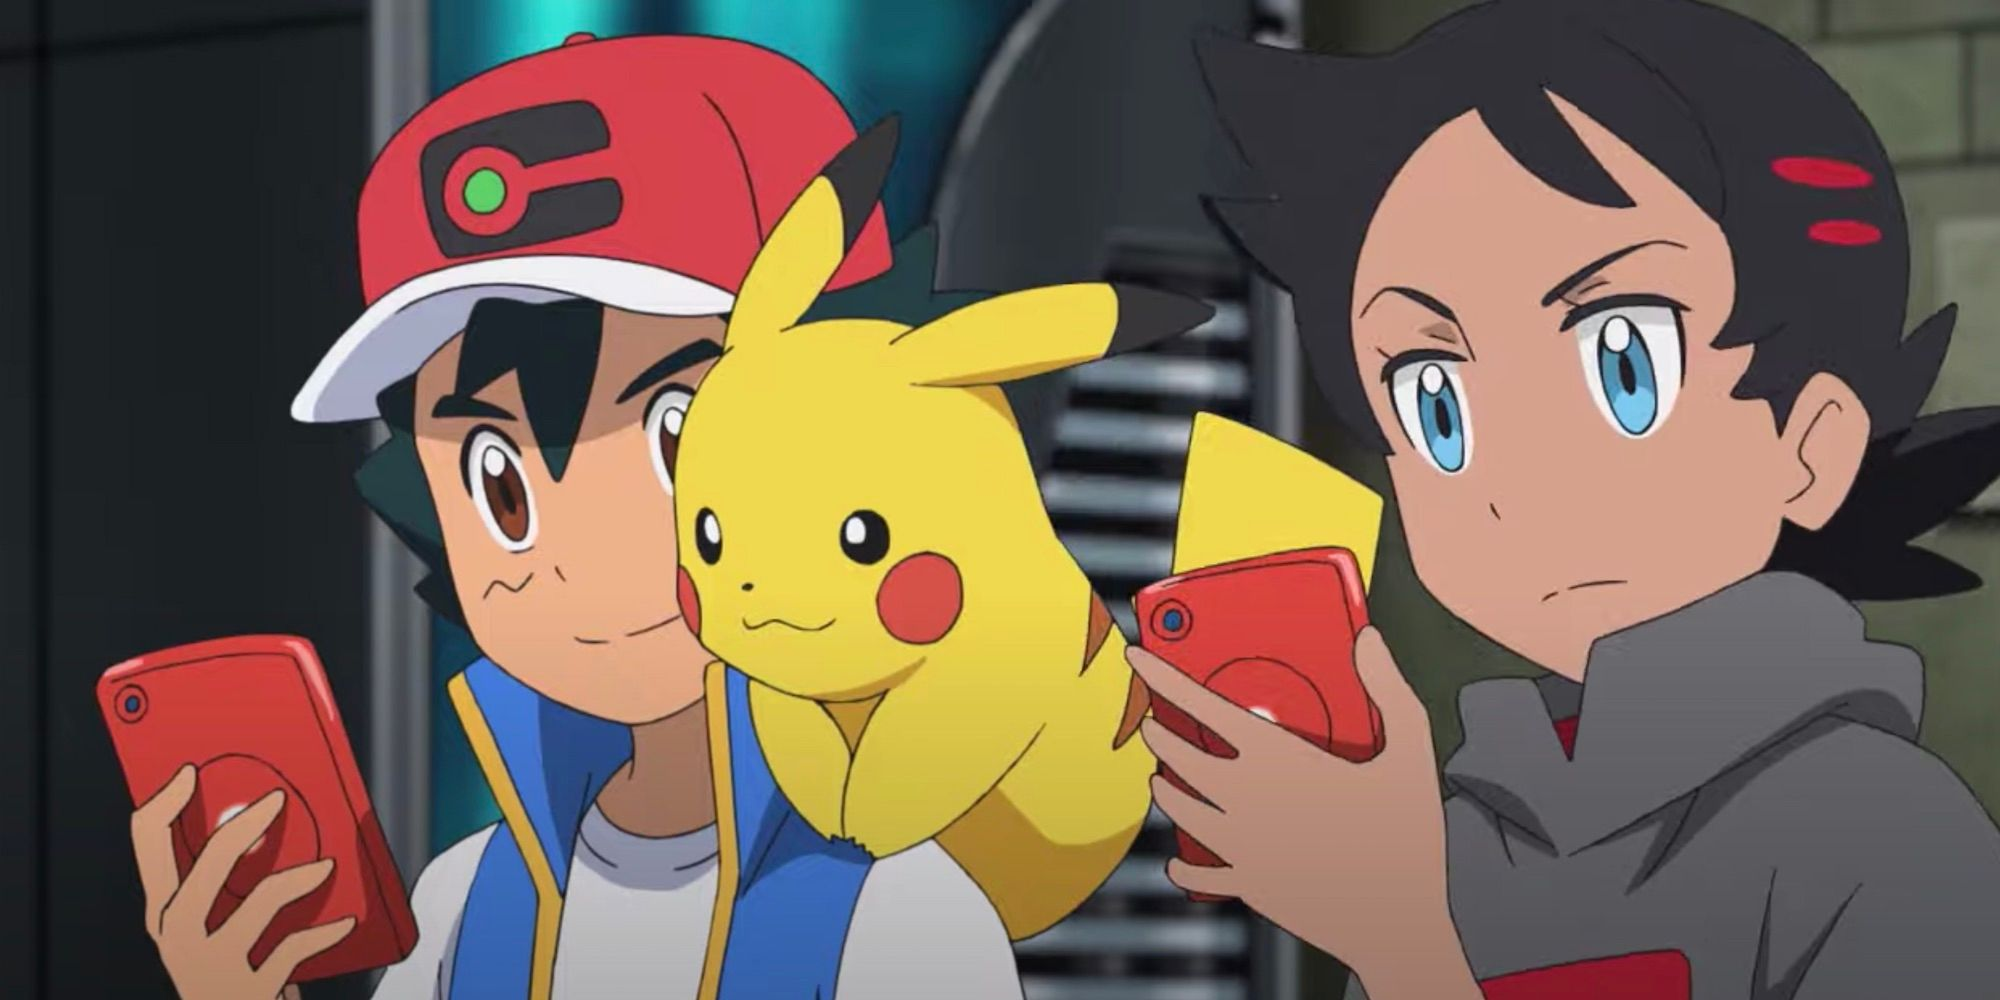 Pokémon: What Your Favorite Character Says About You